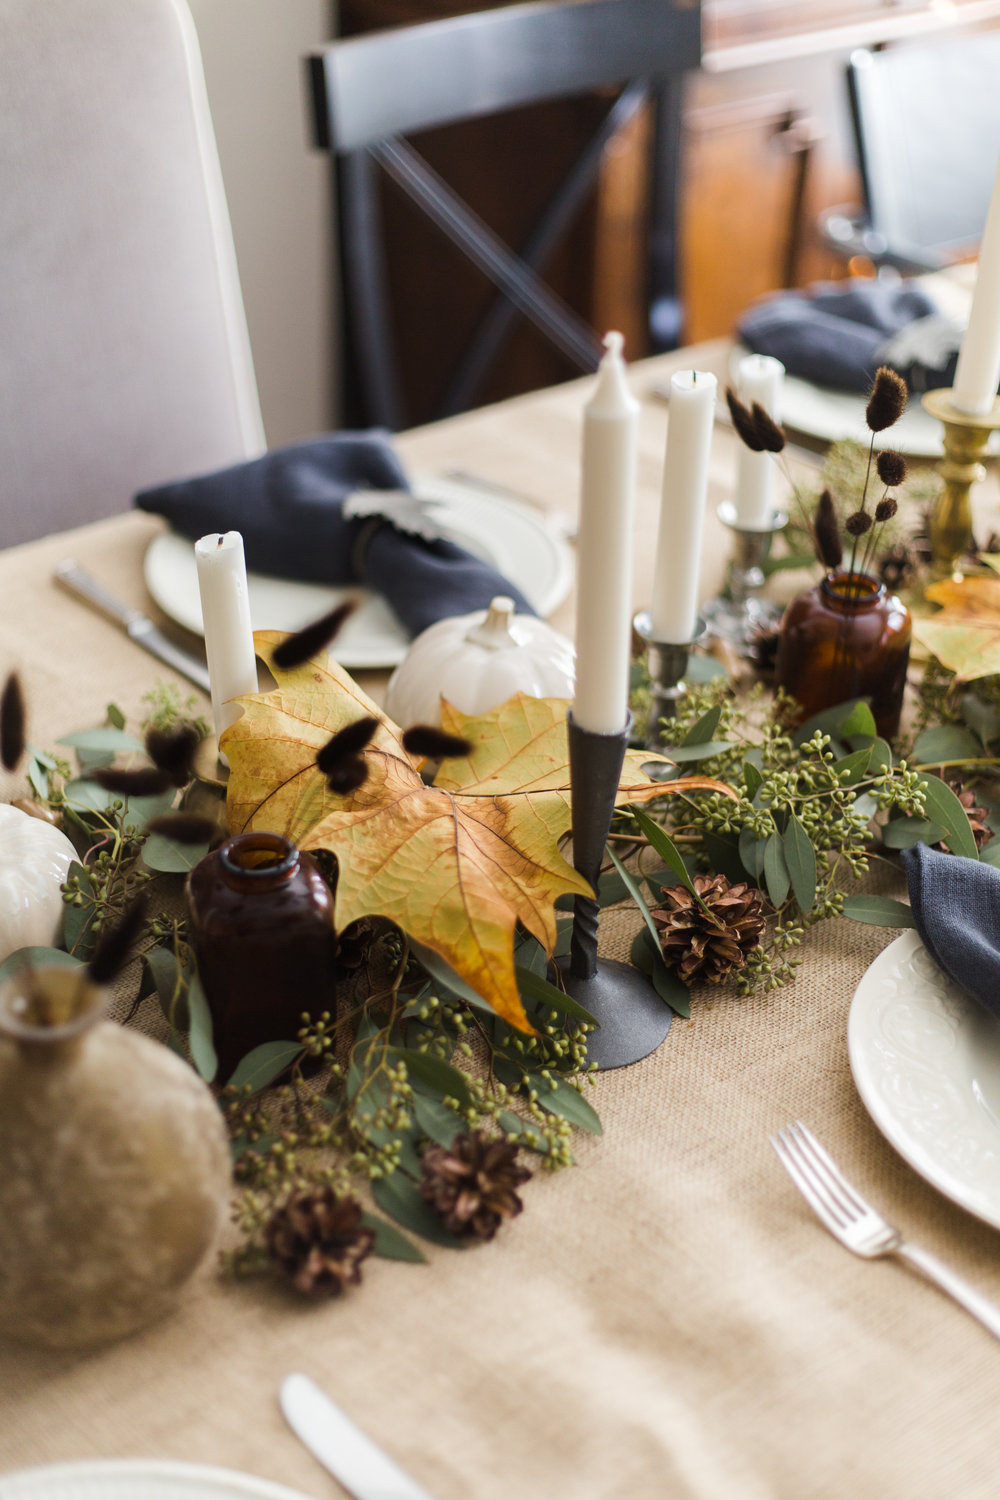 Thanksgiving / Fall Tabletop Decor w/ burlap tablecloth, creamware, pewter and brass candlesticks, eucalyptus and fall leaves / pumpkins from At Home stores